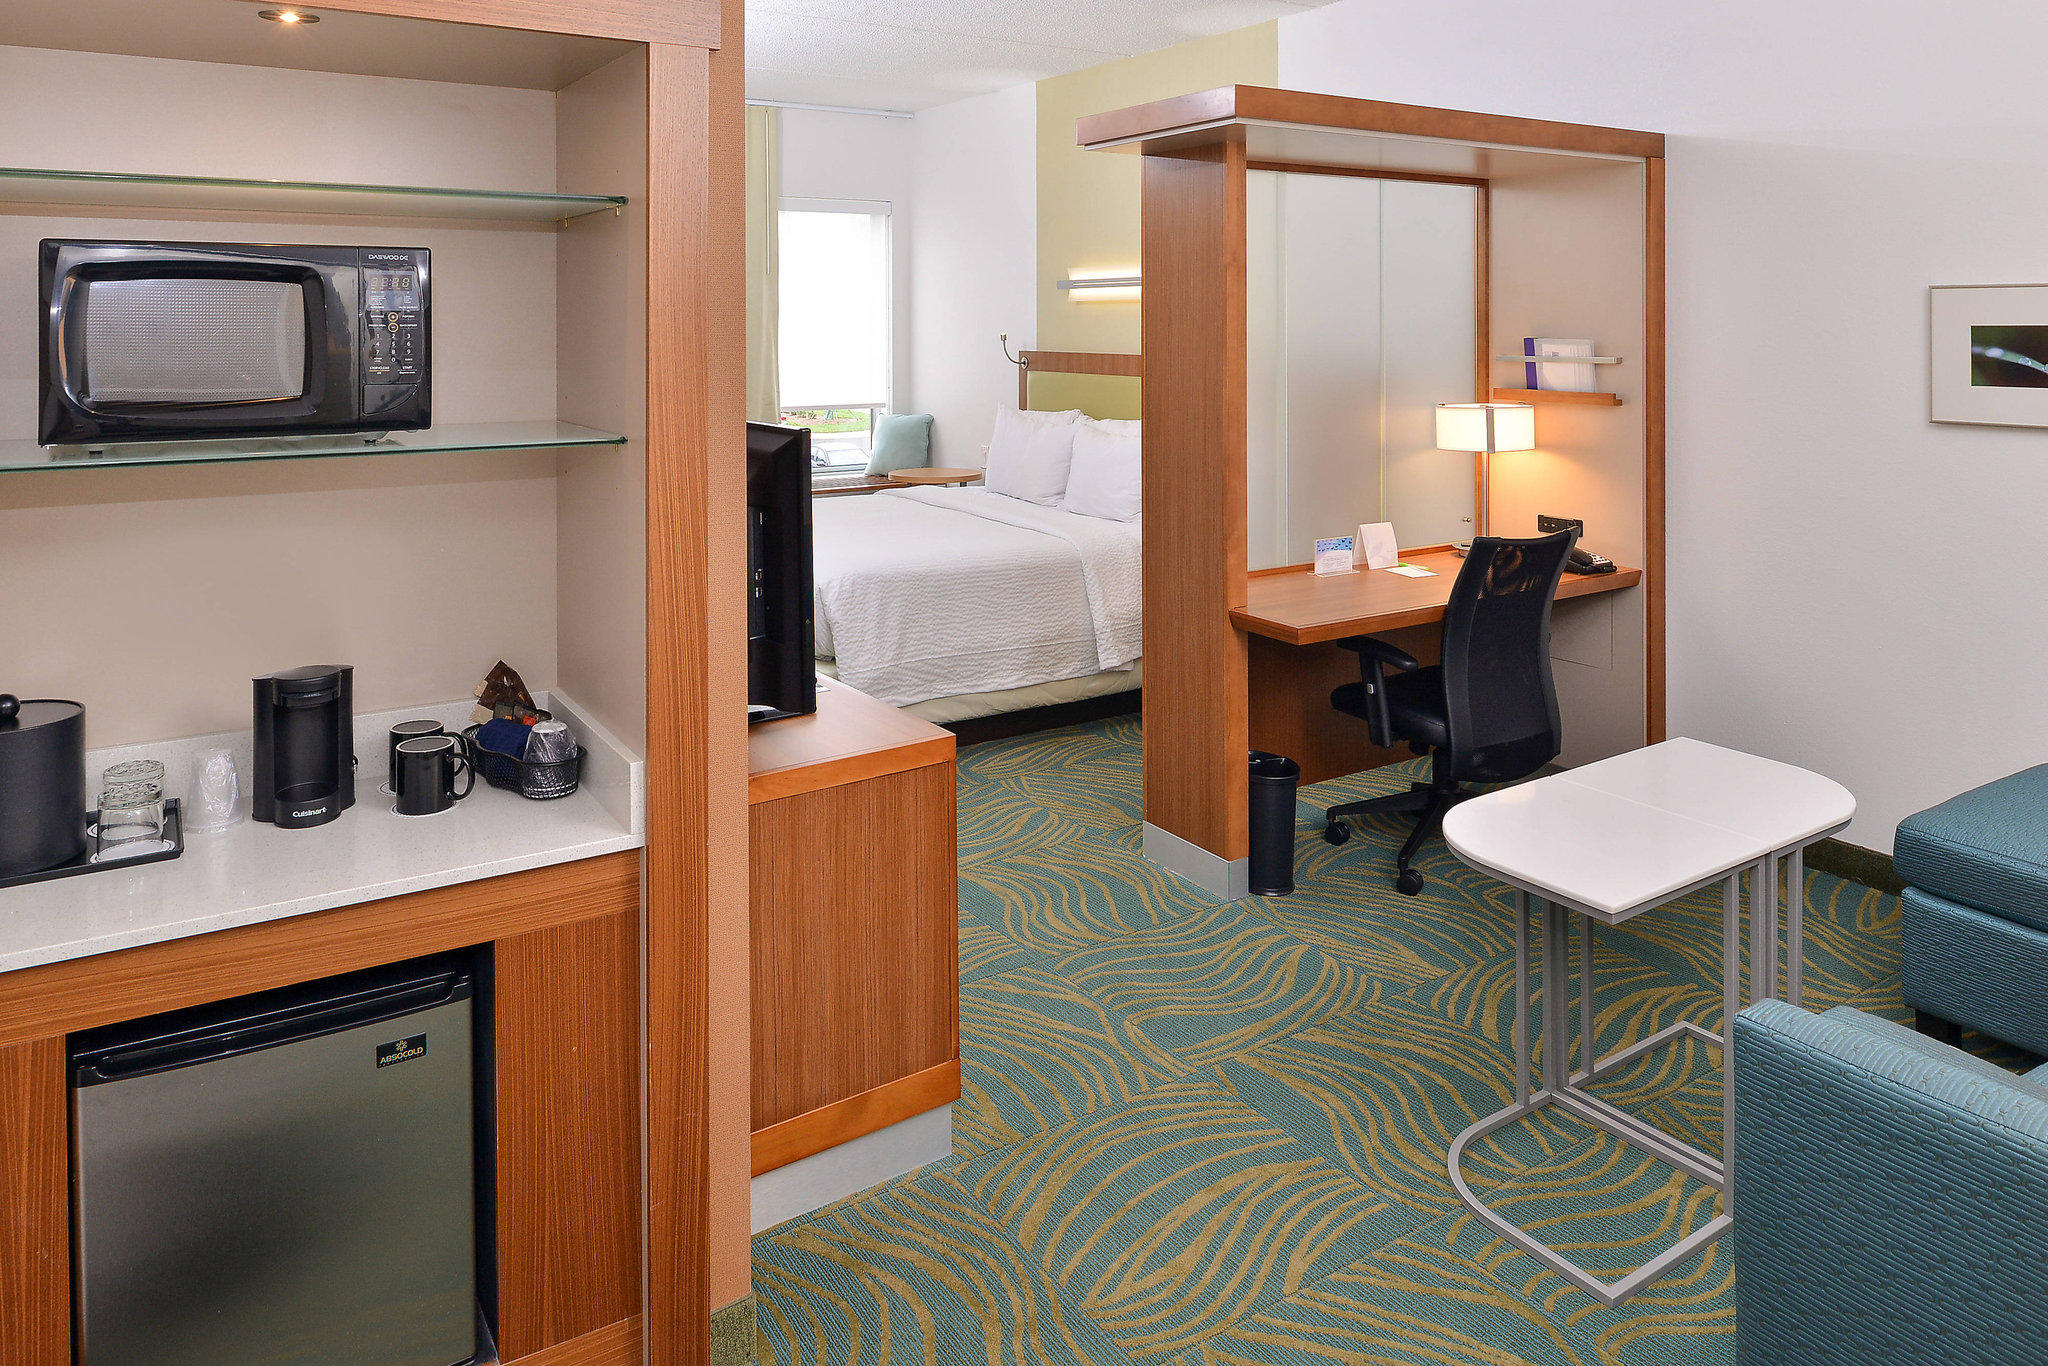 SpringHill Suites by Marriott Raleigh Cary